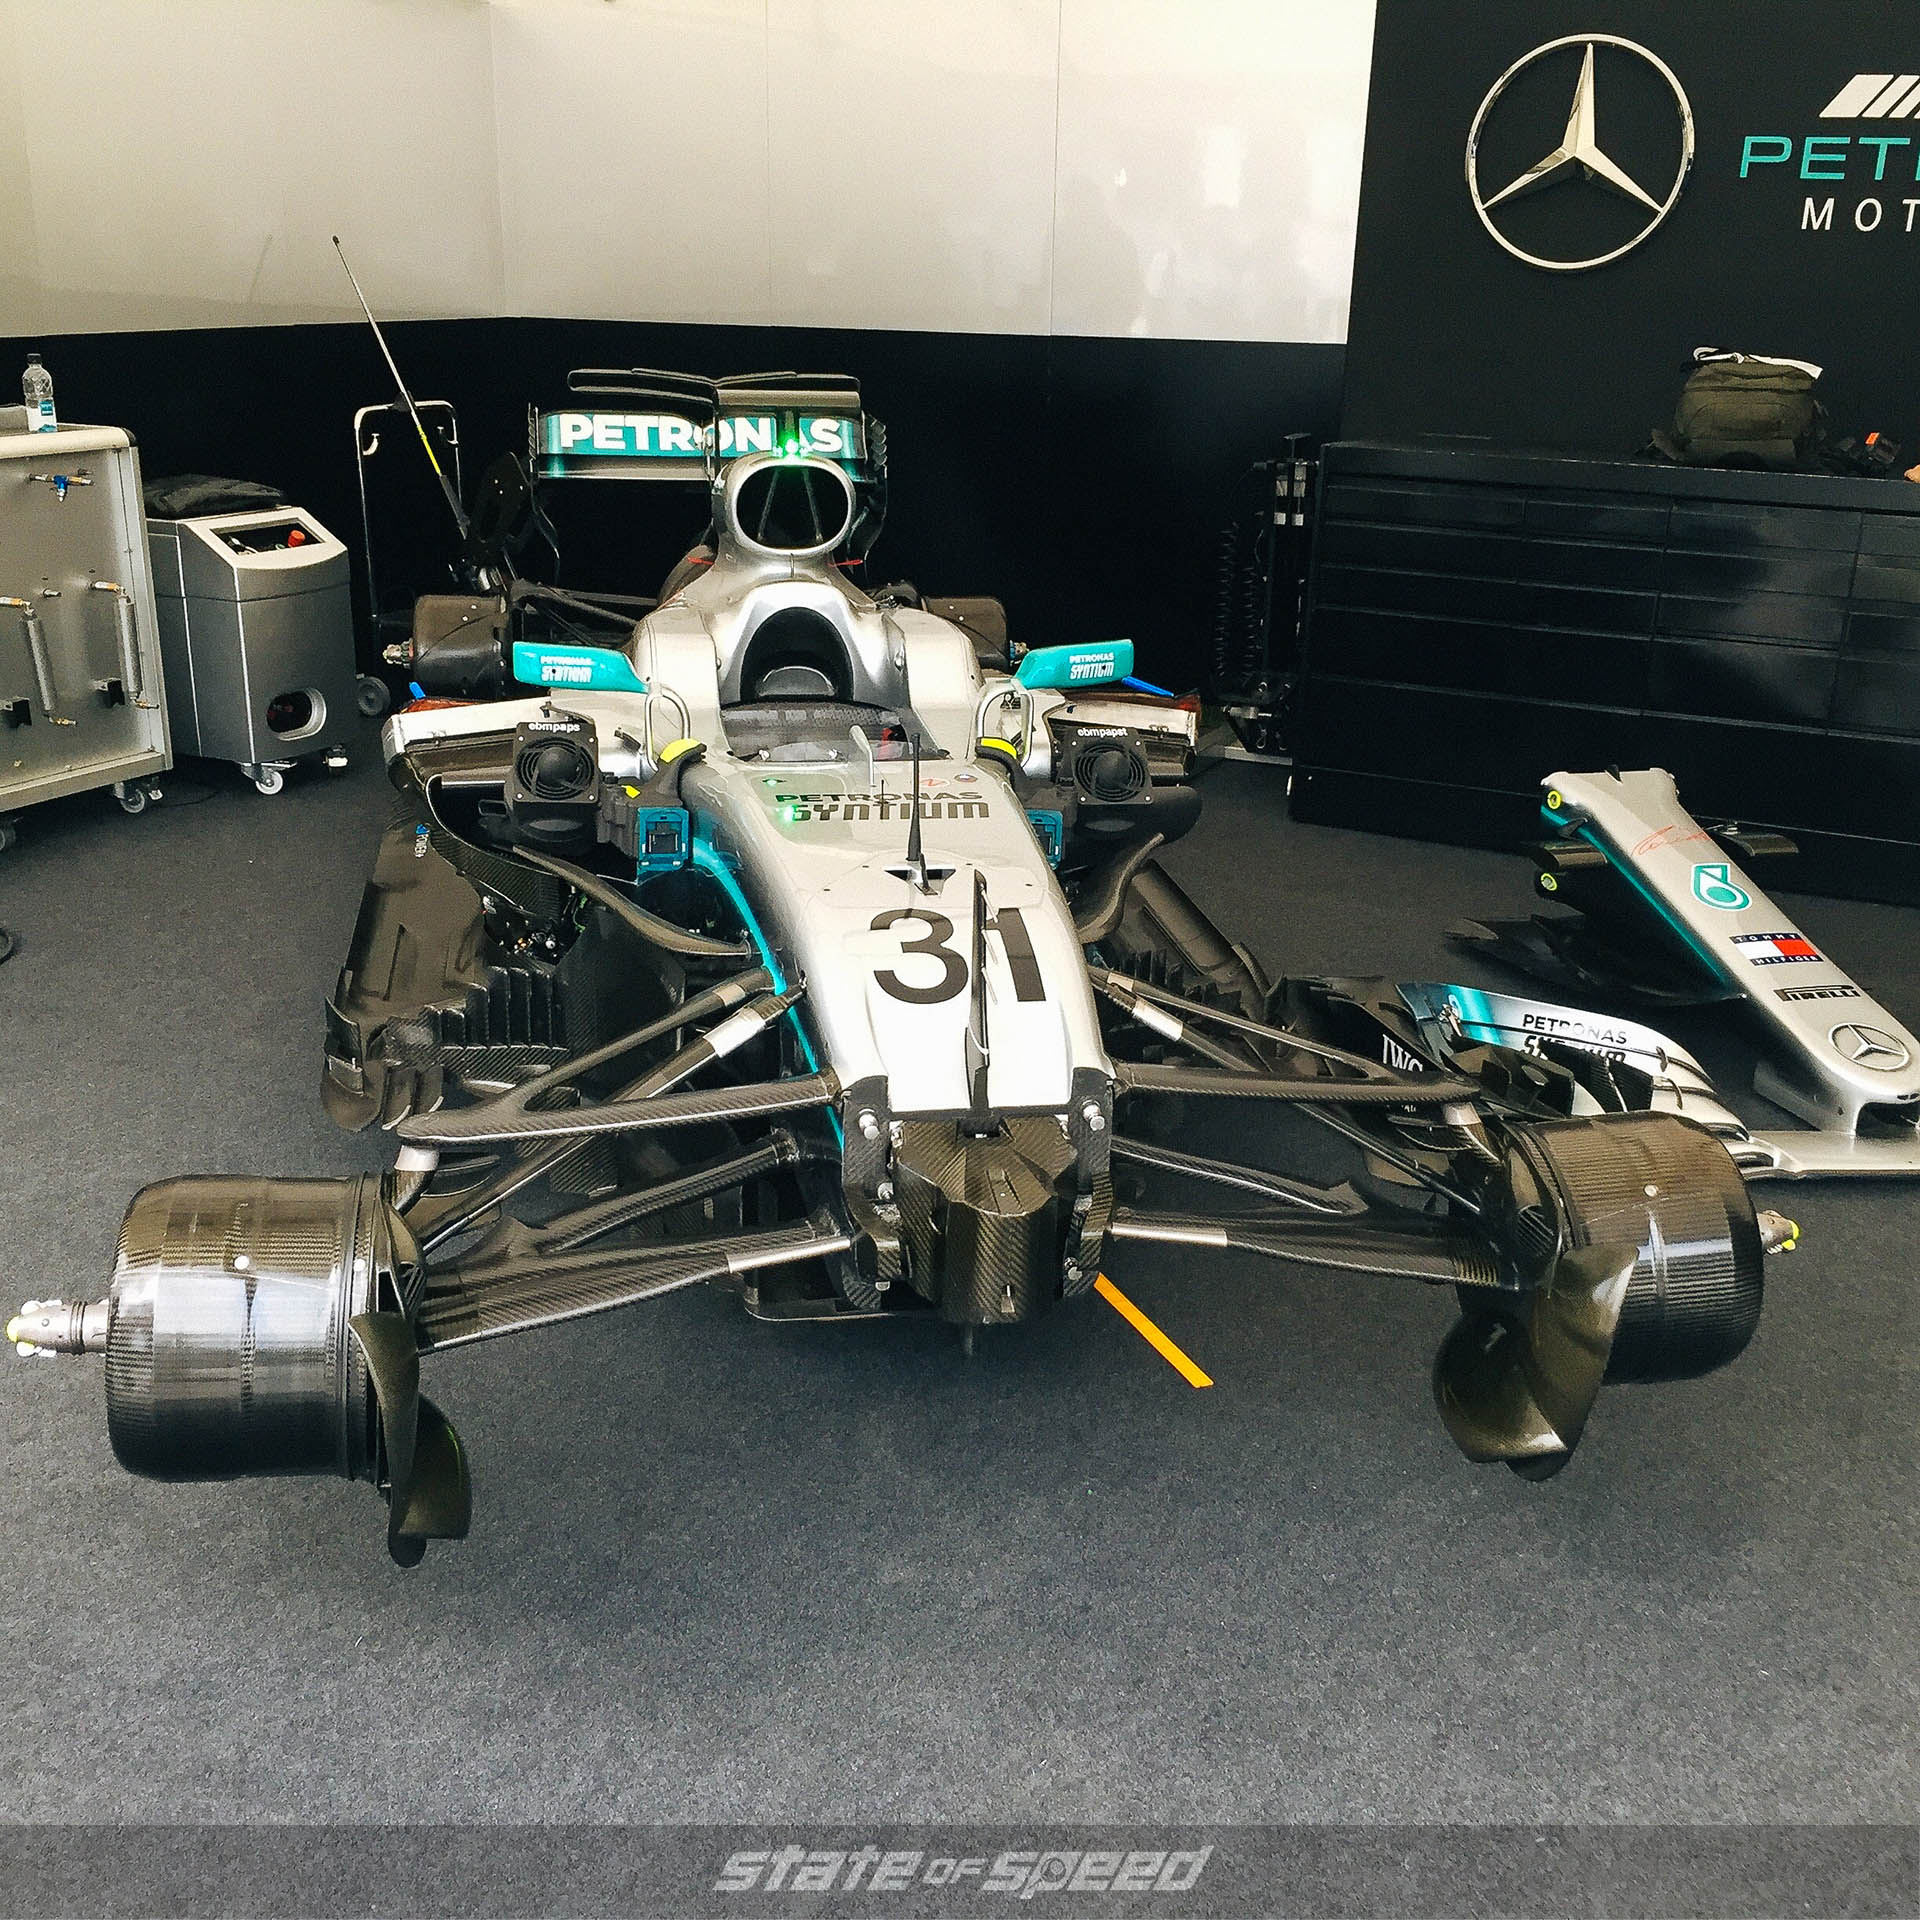 Mercedes F1 Team at Goodwood festival of speed